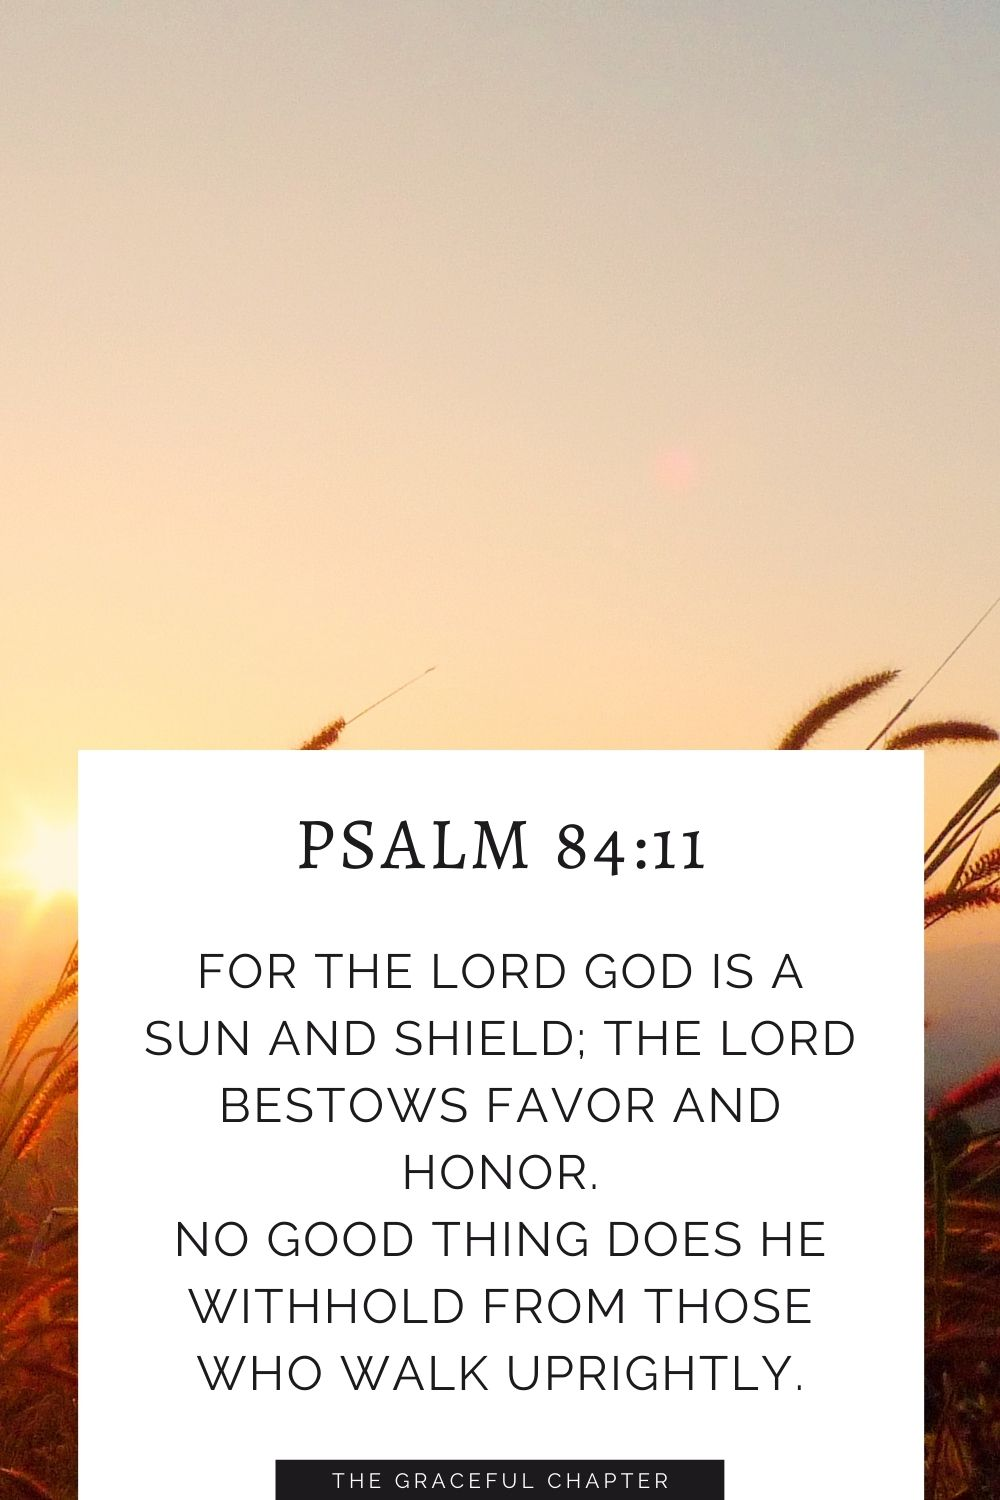 For the Lord God is a sun and shield; the Lord bestows favor and honor. No good thing does he withhold from those who walk uprightly. Psalm 84:11